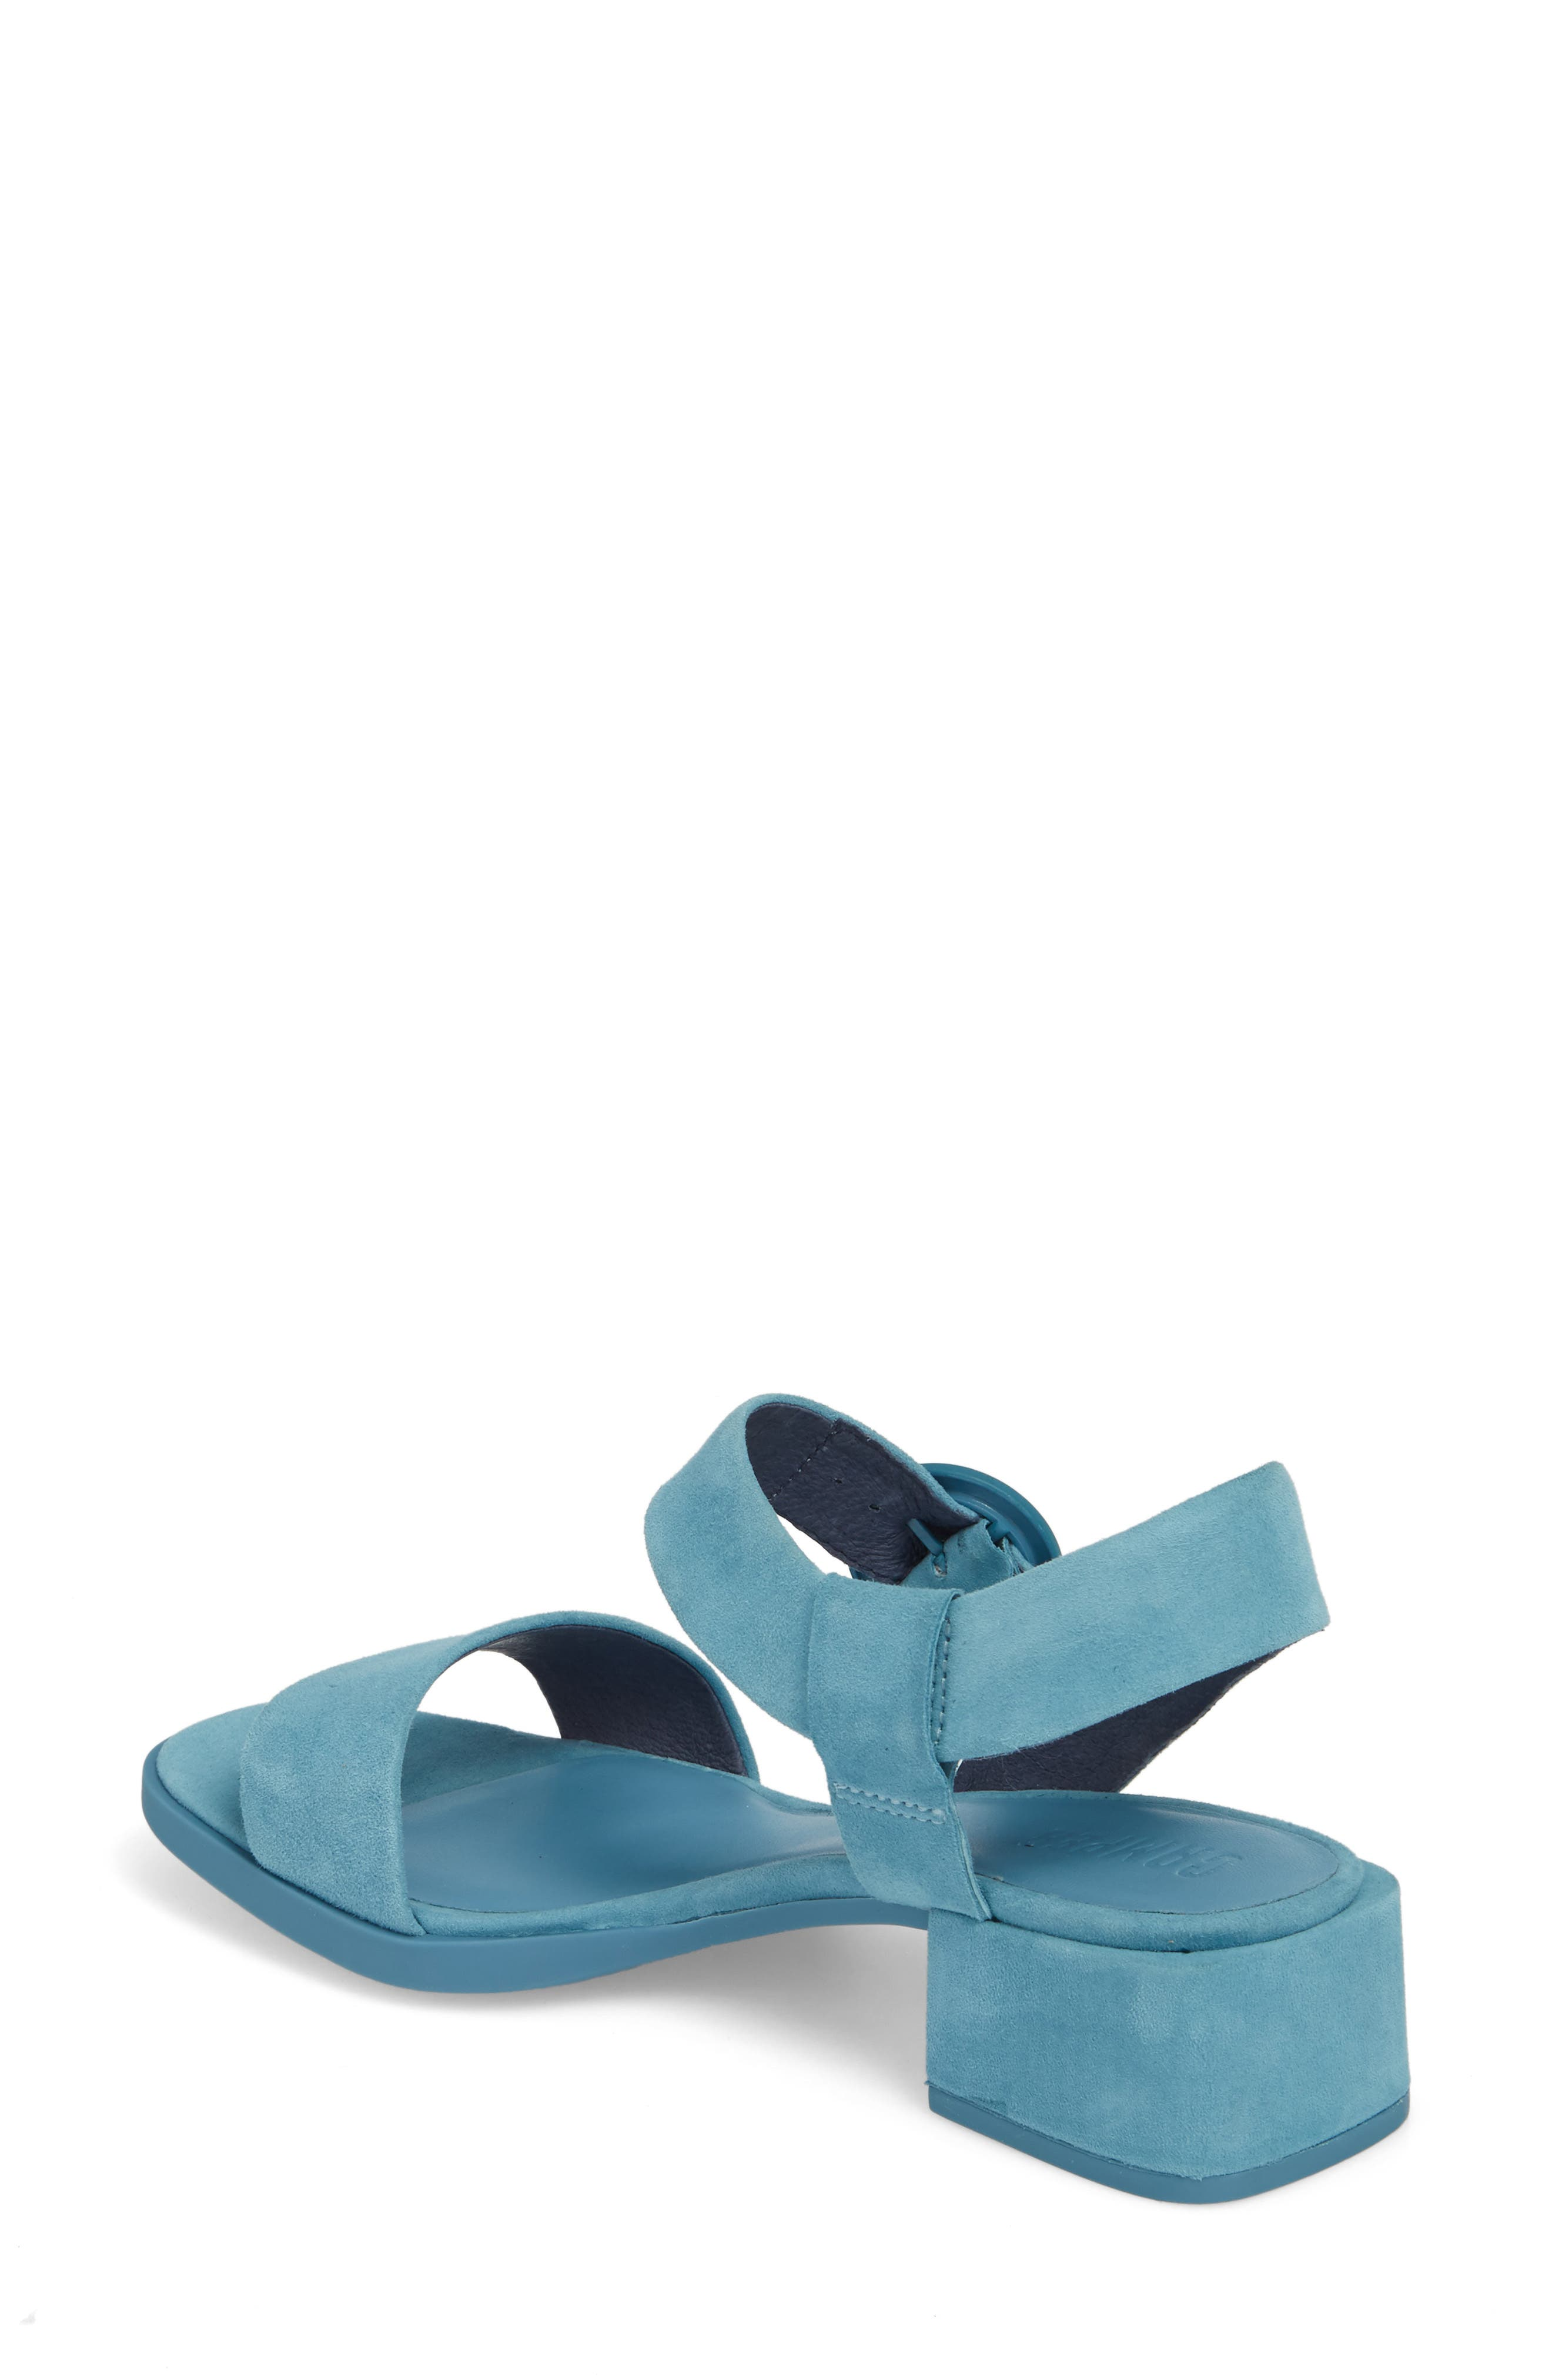 Kobo Sandal,                             Alternate thumbnail 2, color,                             Medium Blue Suede